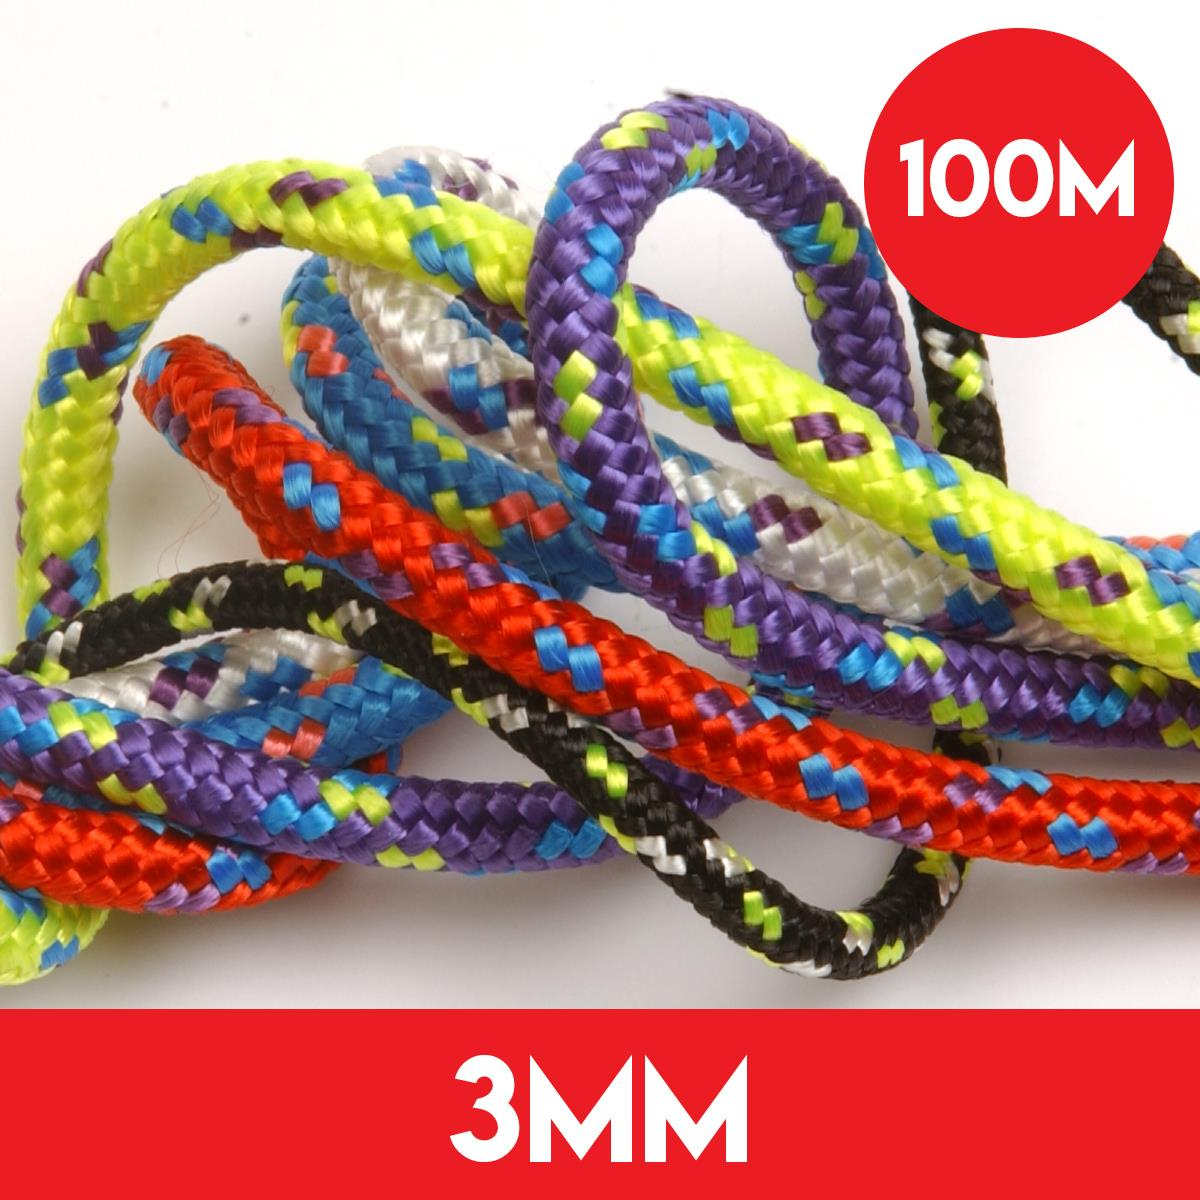 100m of 3mm Kingfisher Evolution Performance Rope